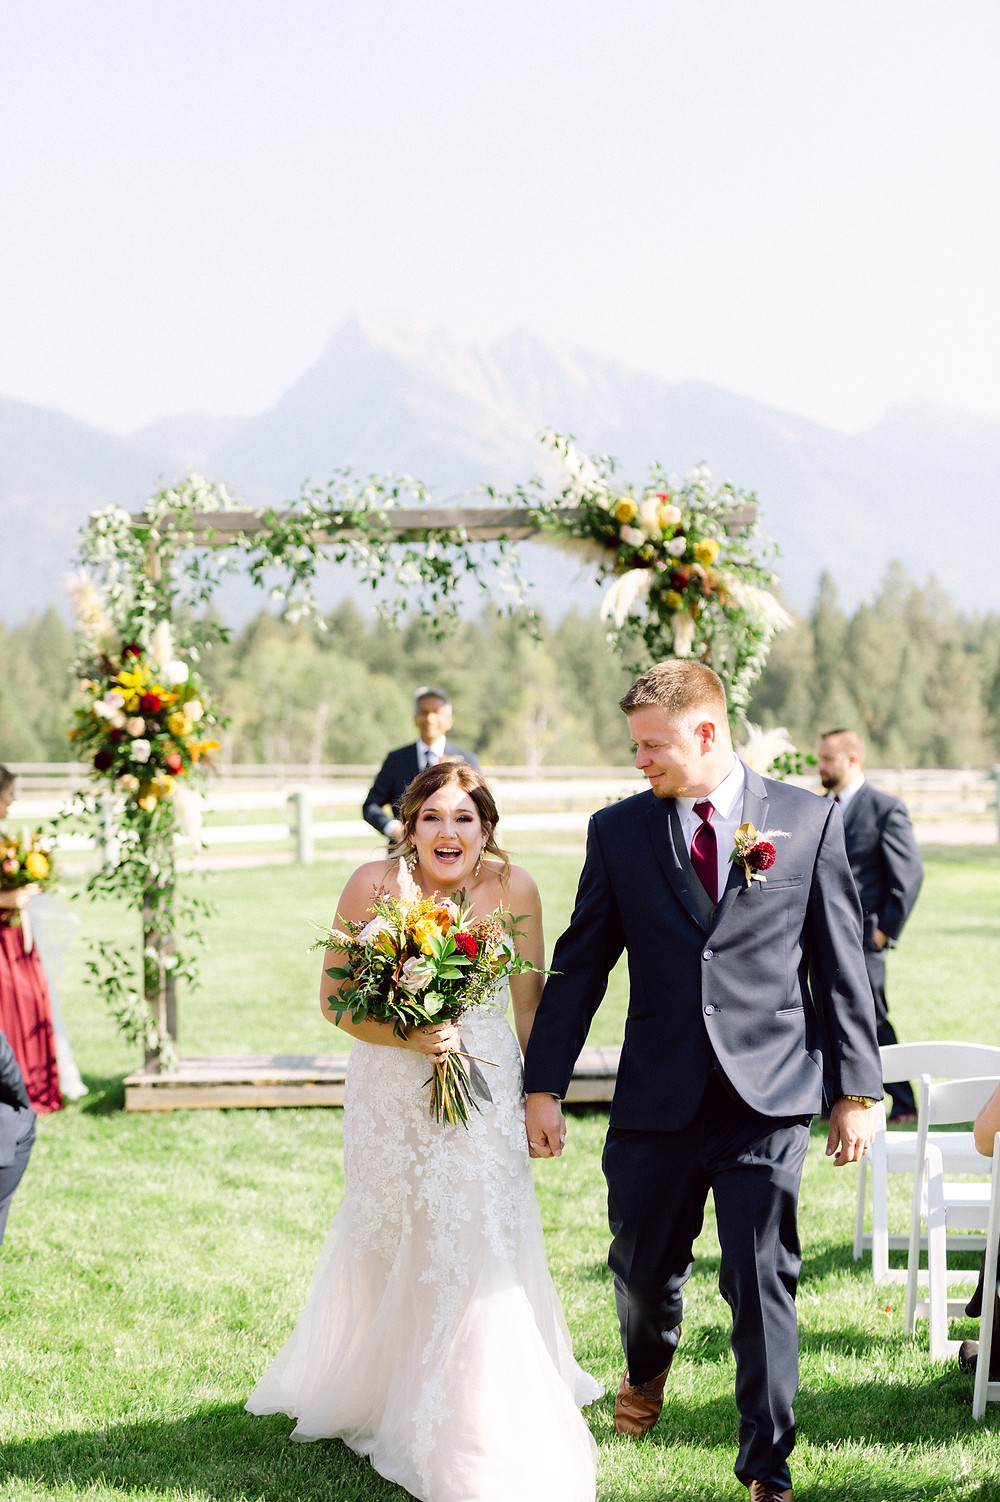 how to get the best wedding photos, wedding photography tips for brides